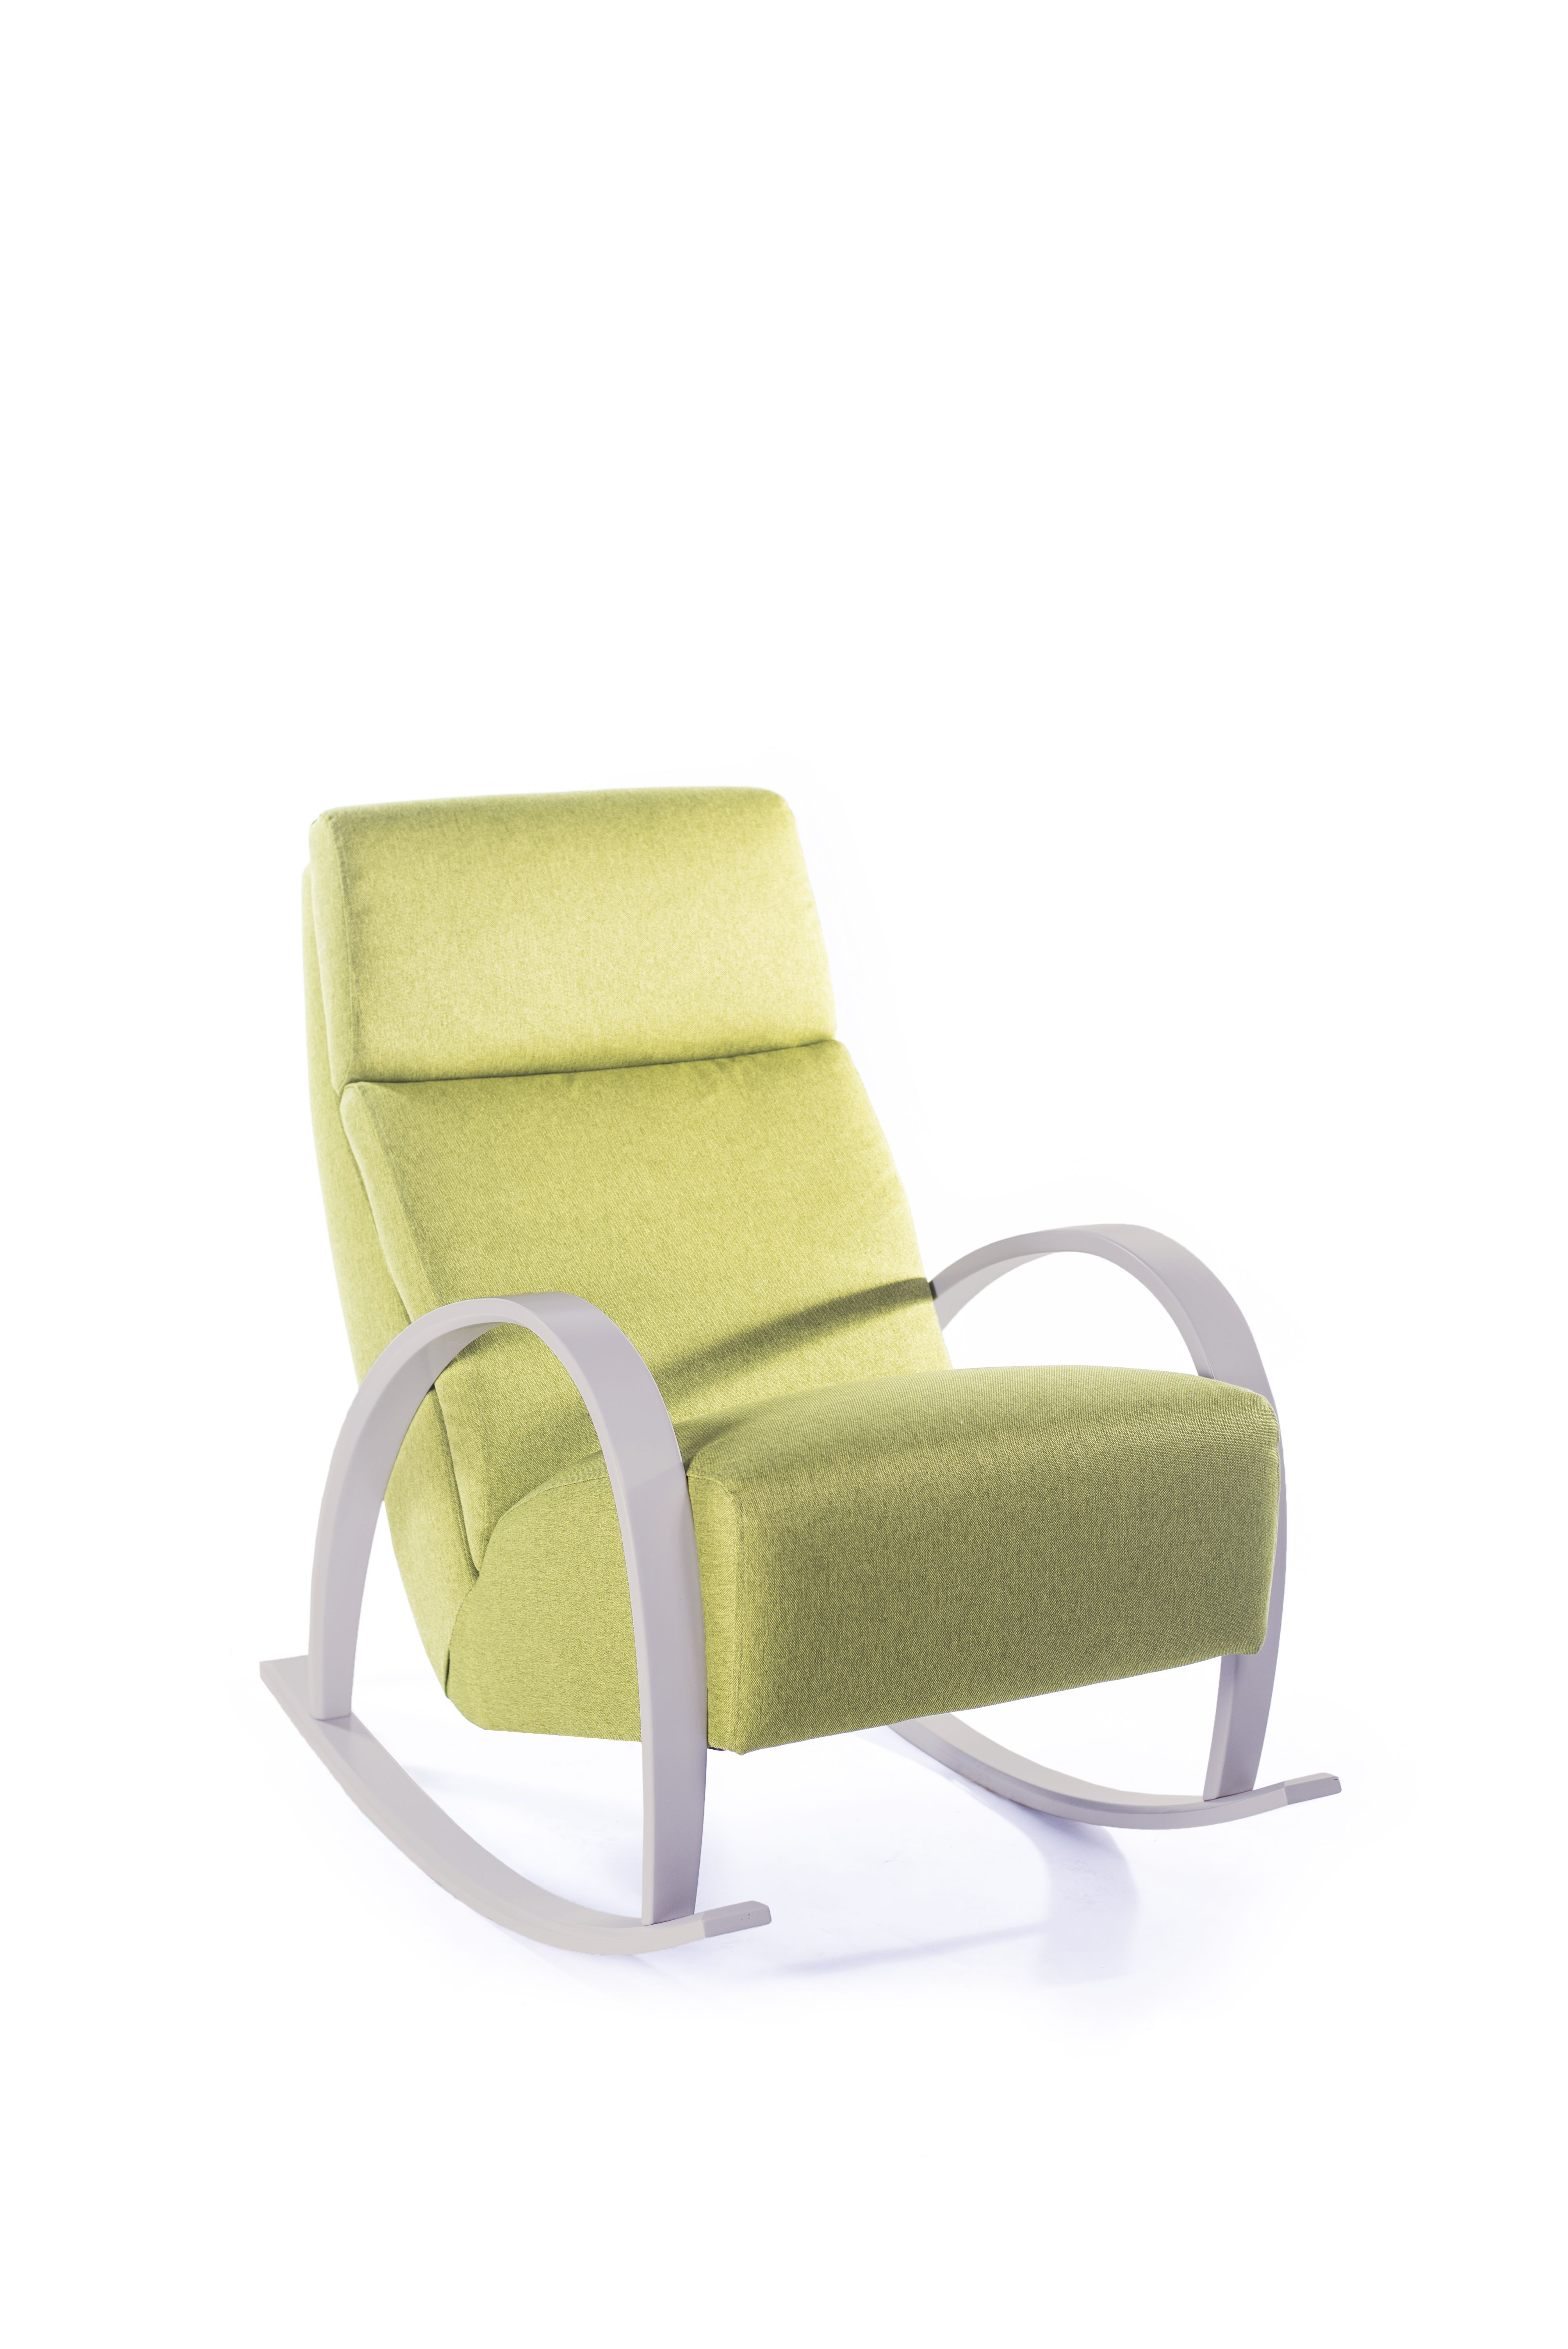 The Rocking Chair Is Small Enough To Fit In Most Nursery Rooms And Boasts Ergonomic